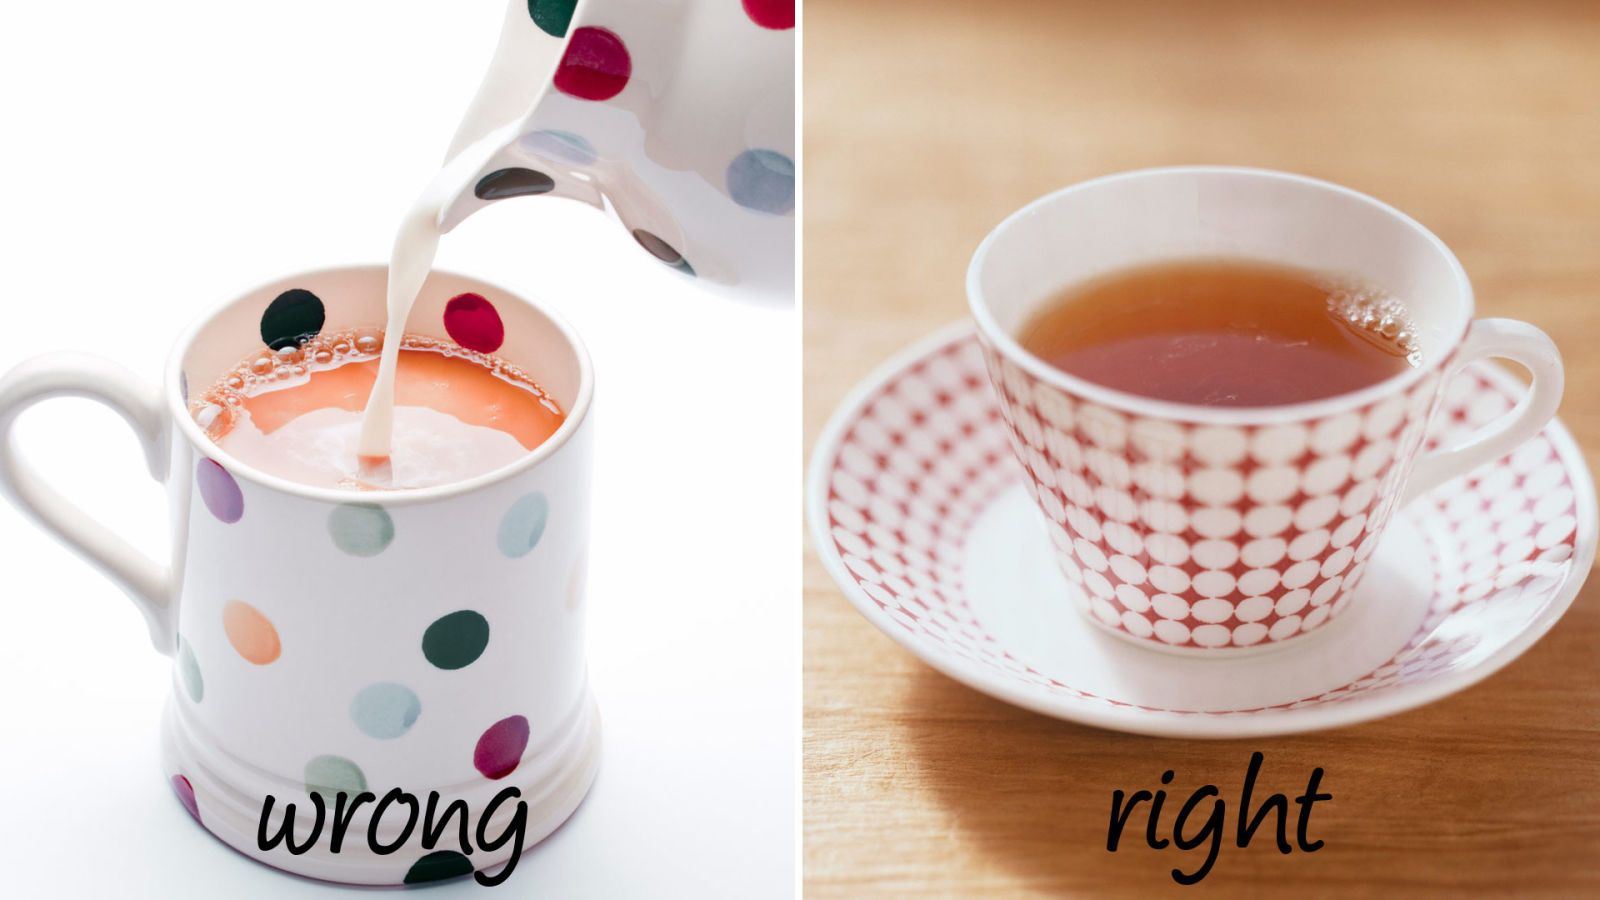 """<p><strong>Wrong</strong>: You may do as the Brits do and add milk to it. Or if you're drinking green tea, you may add sugar.</p> <p><strong>Right:</strong> Skip the milk. A 2013 study published in the <a href=""""http://www.ncbi.nlm.nih.gov/pubmed/22366739""""><em>European Journal of Clinical Nutrition</em></a> found that doing so actually takes <em>away</em> from the cardiovascular benefits that tea provides. And if you're going green, forget the sugar—it sound odd, but add a bit of juice to sweeten it up instead. According to a <a href=""""http://www.ncbi.nlm.nih.gov/pubmed/17688297"""">study</a> from Purdue University, the vitamin C in juice may make the nutrients in green tea easier to absorb. </p>"""